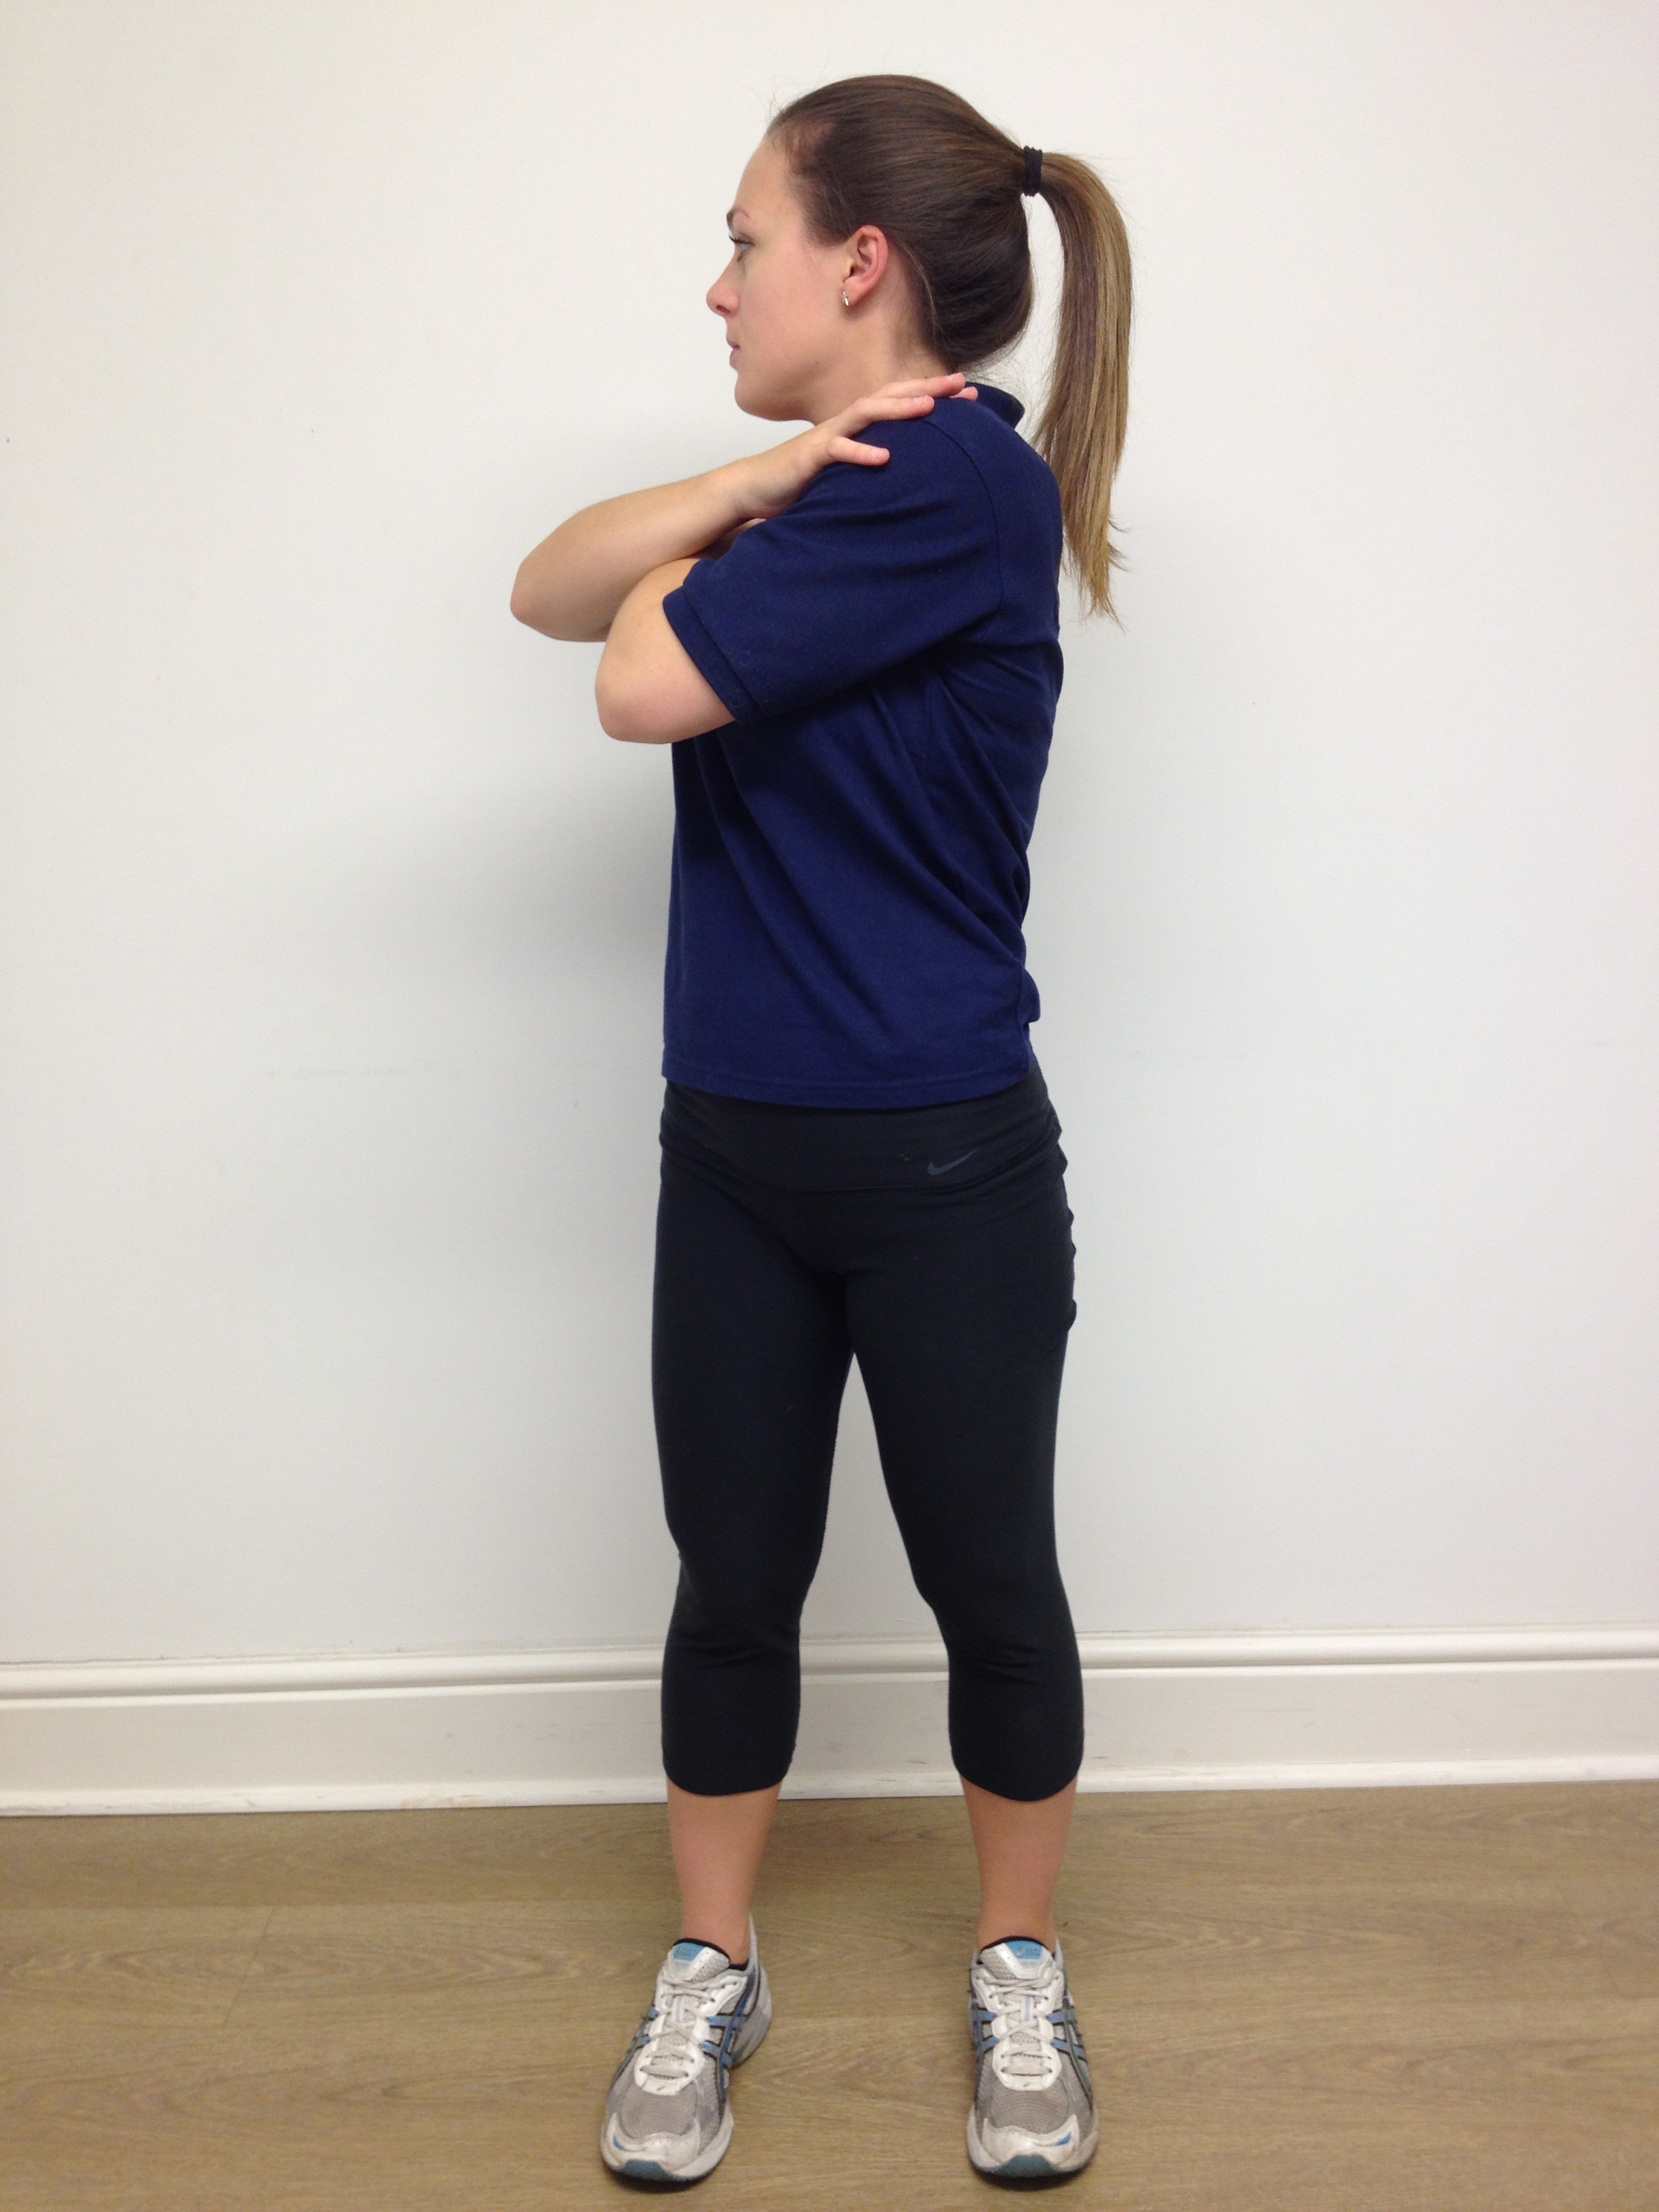 thoracic spine  mid-back  rotation stretch  standing